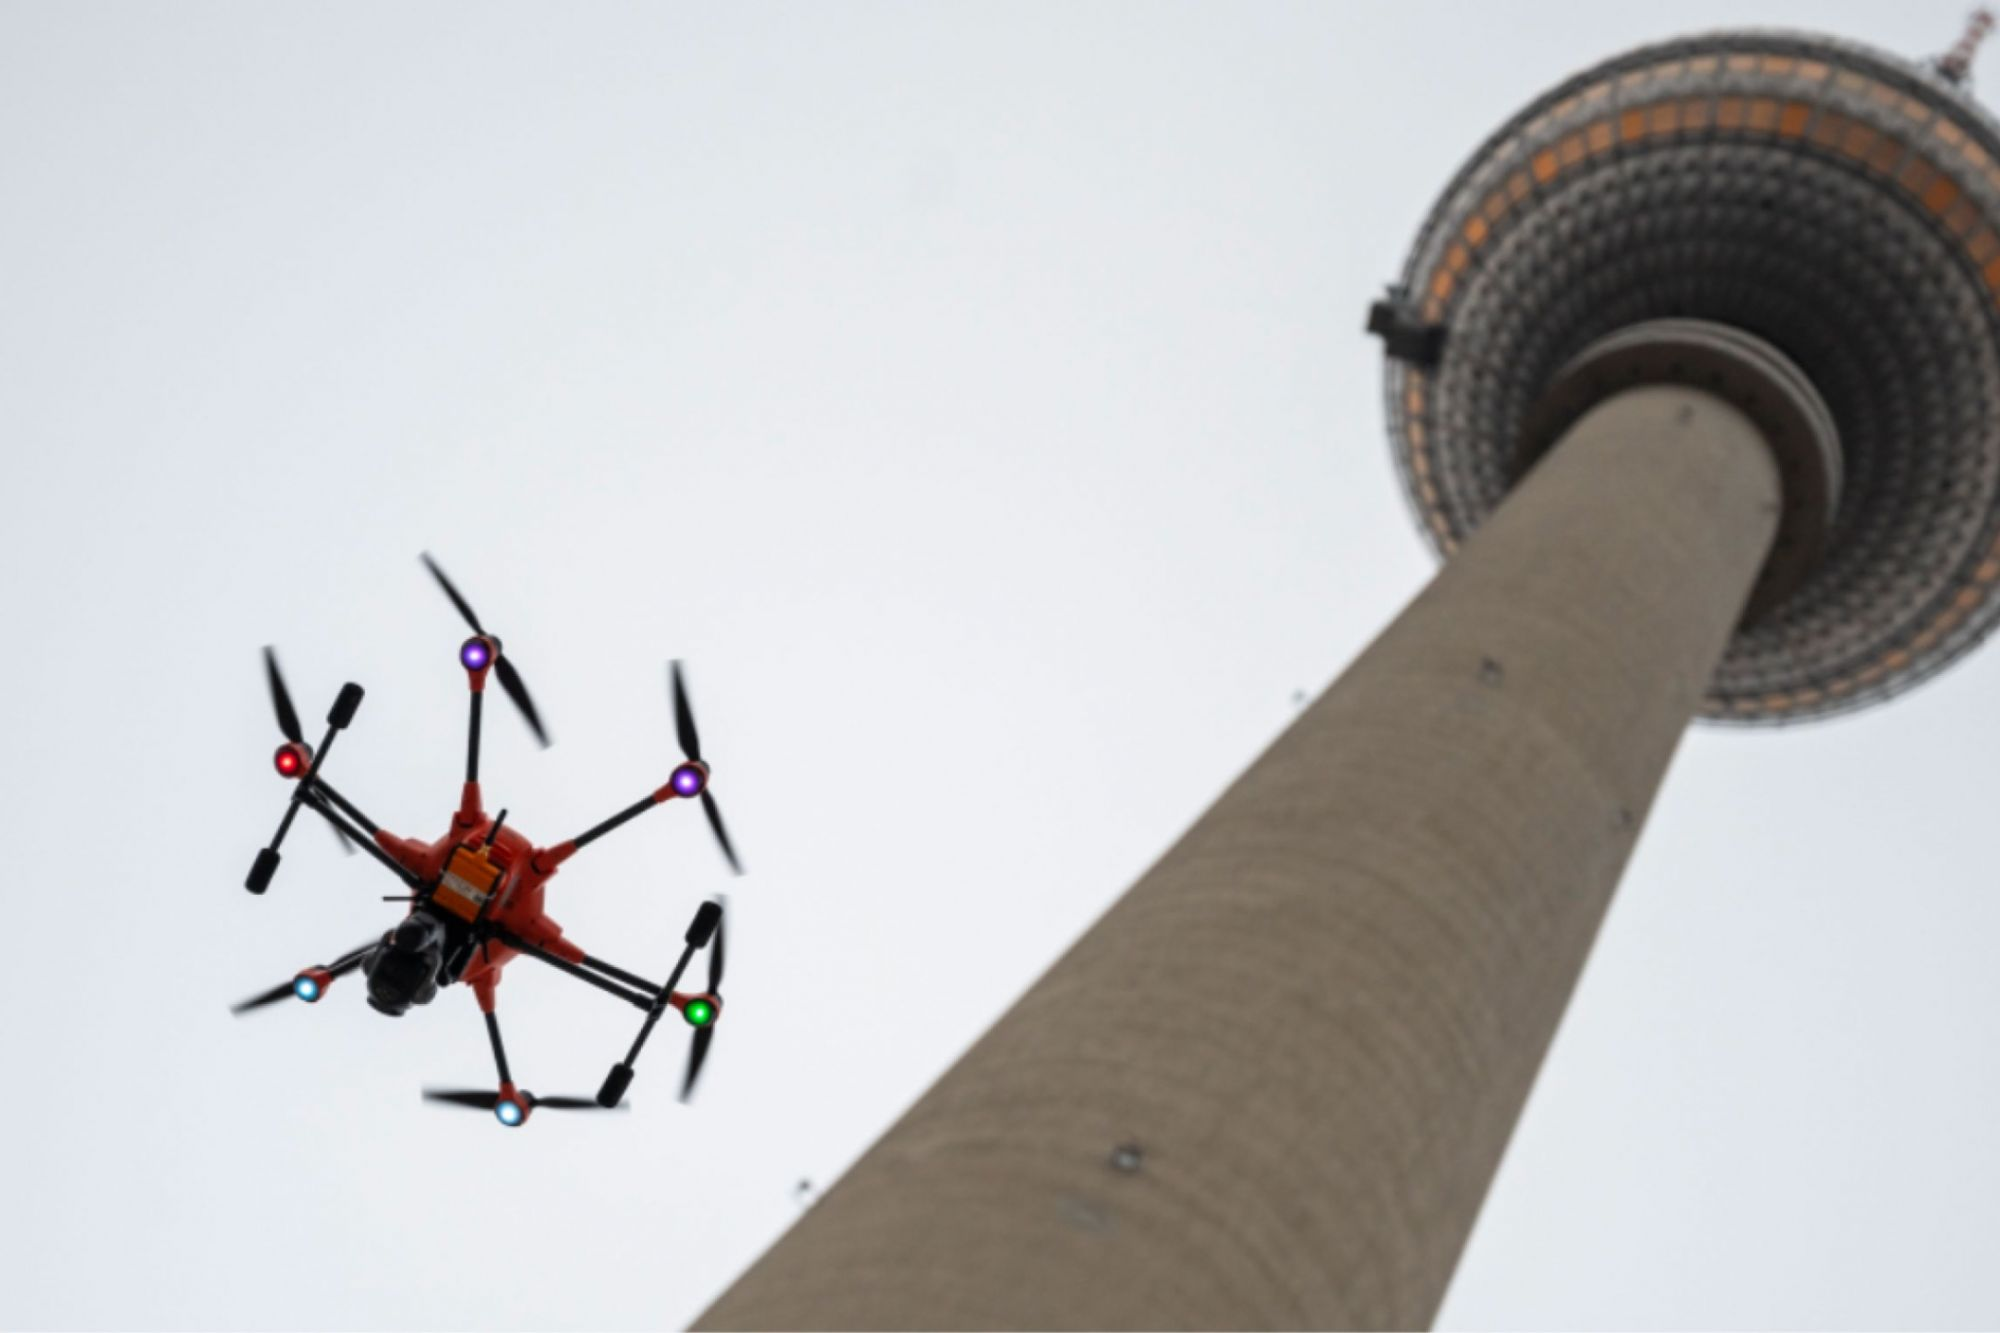 Drones May One Day Deliver Your Ben & Jerry's Ice Cream